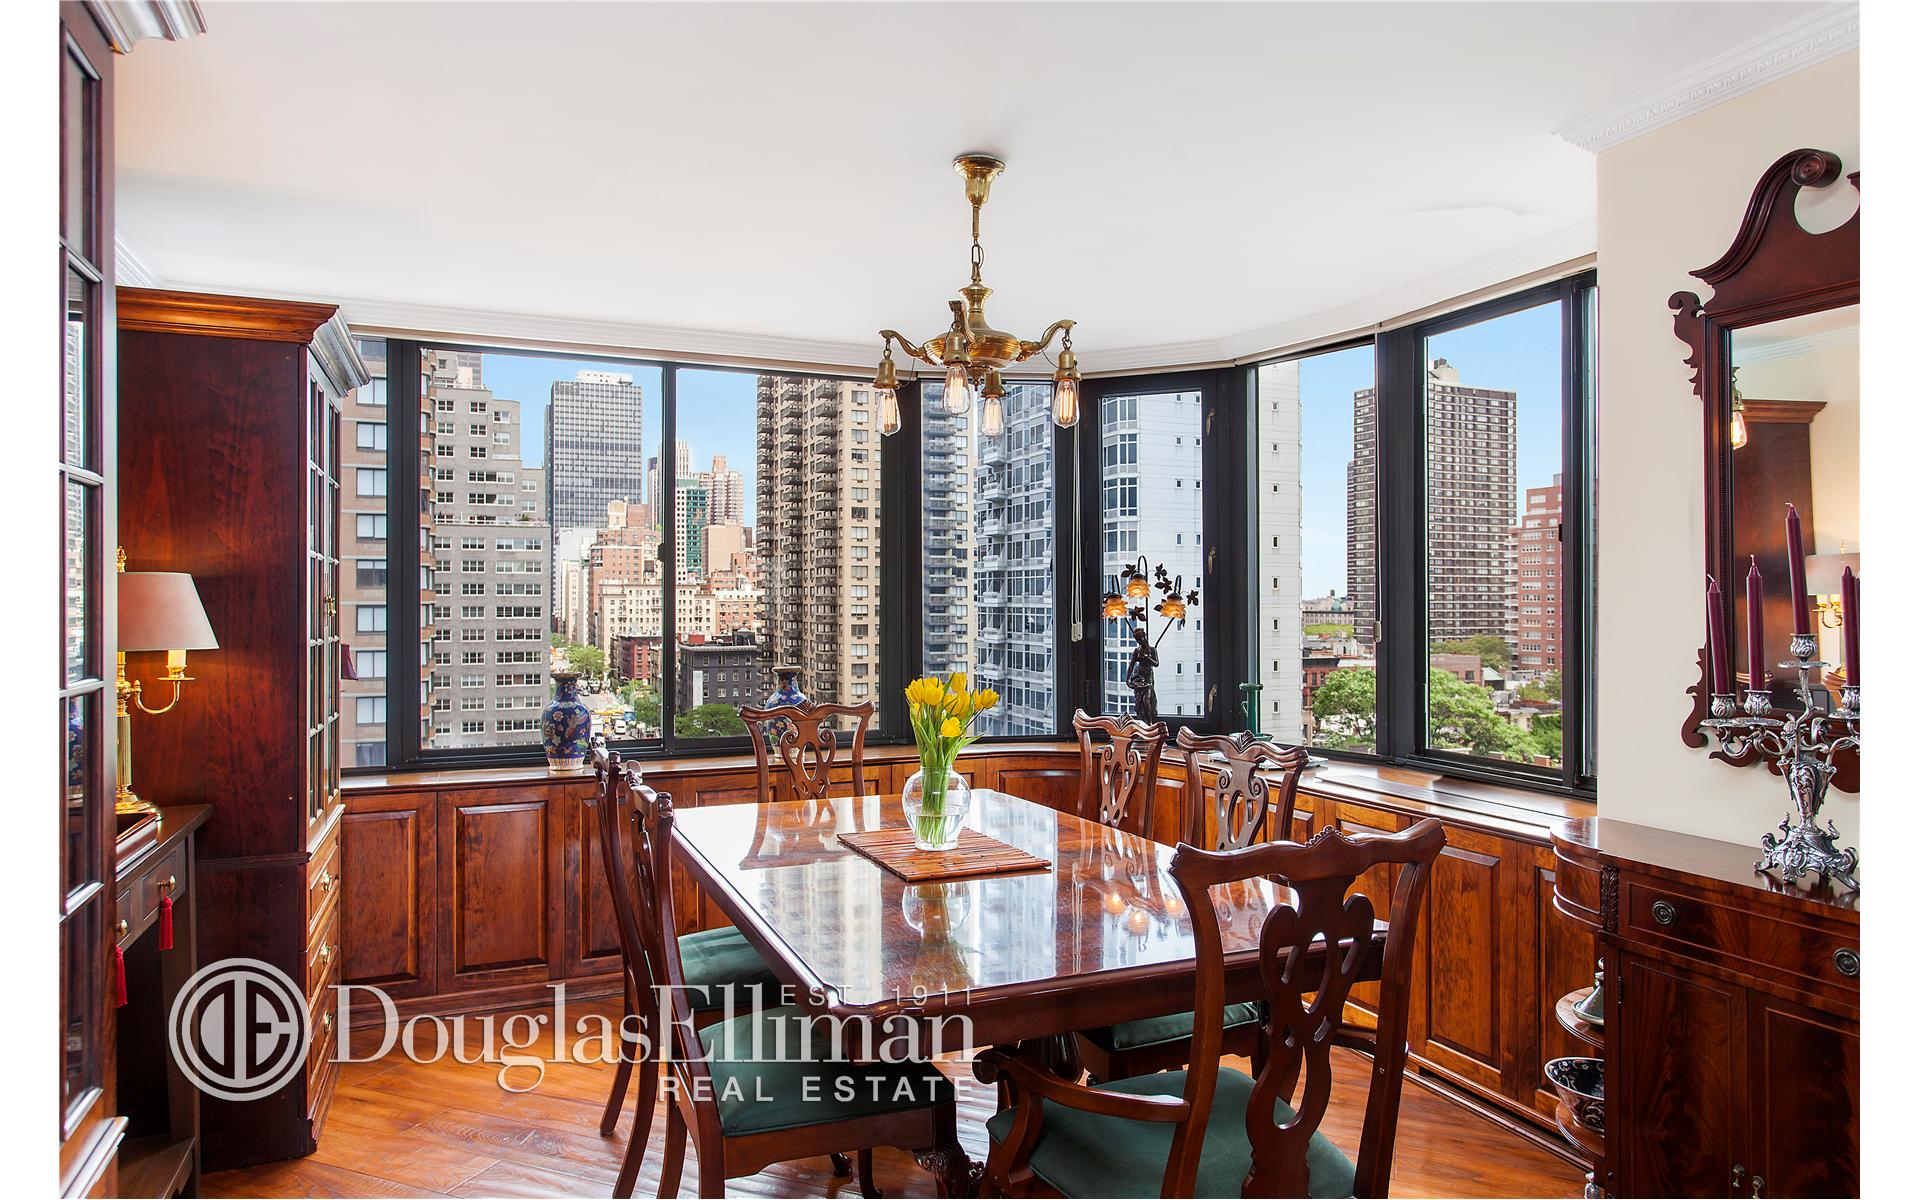 Condominium for Sale at The Bentley, The Bentley, 159 East 30th Street New York, New York 10016 United States